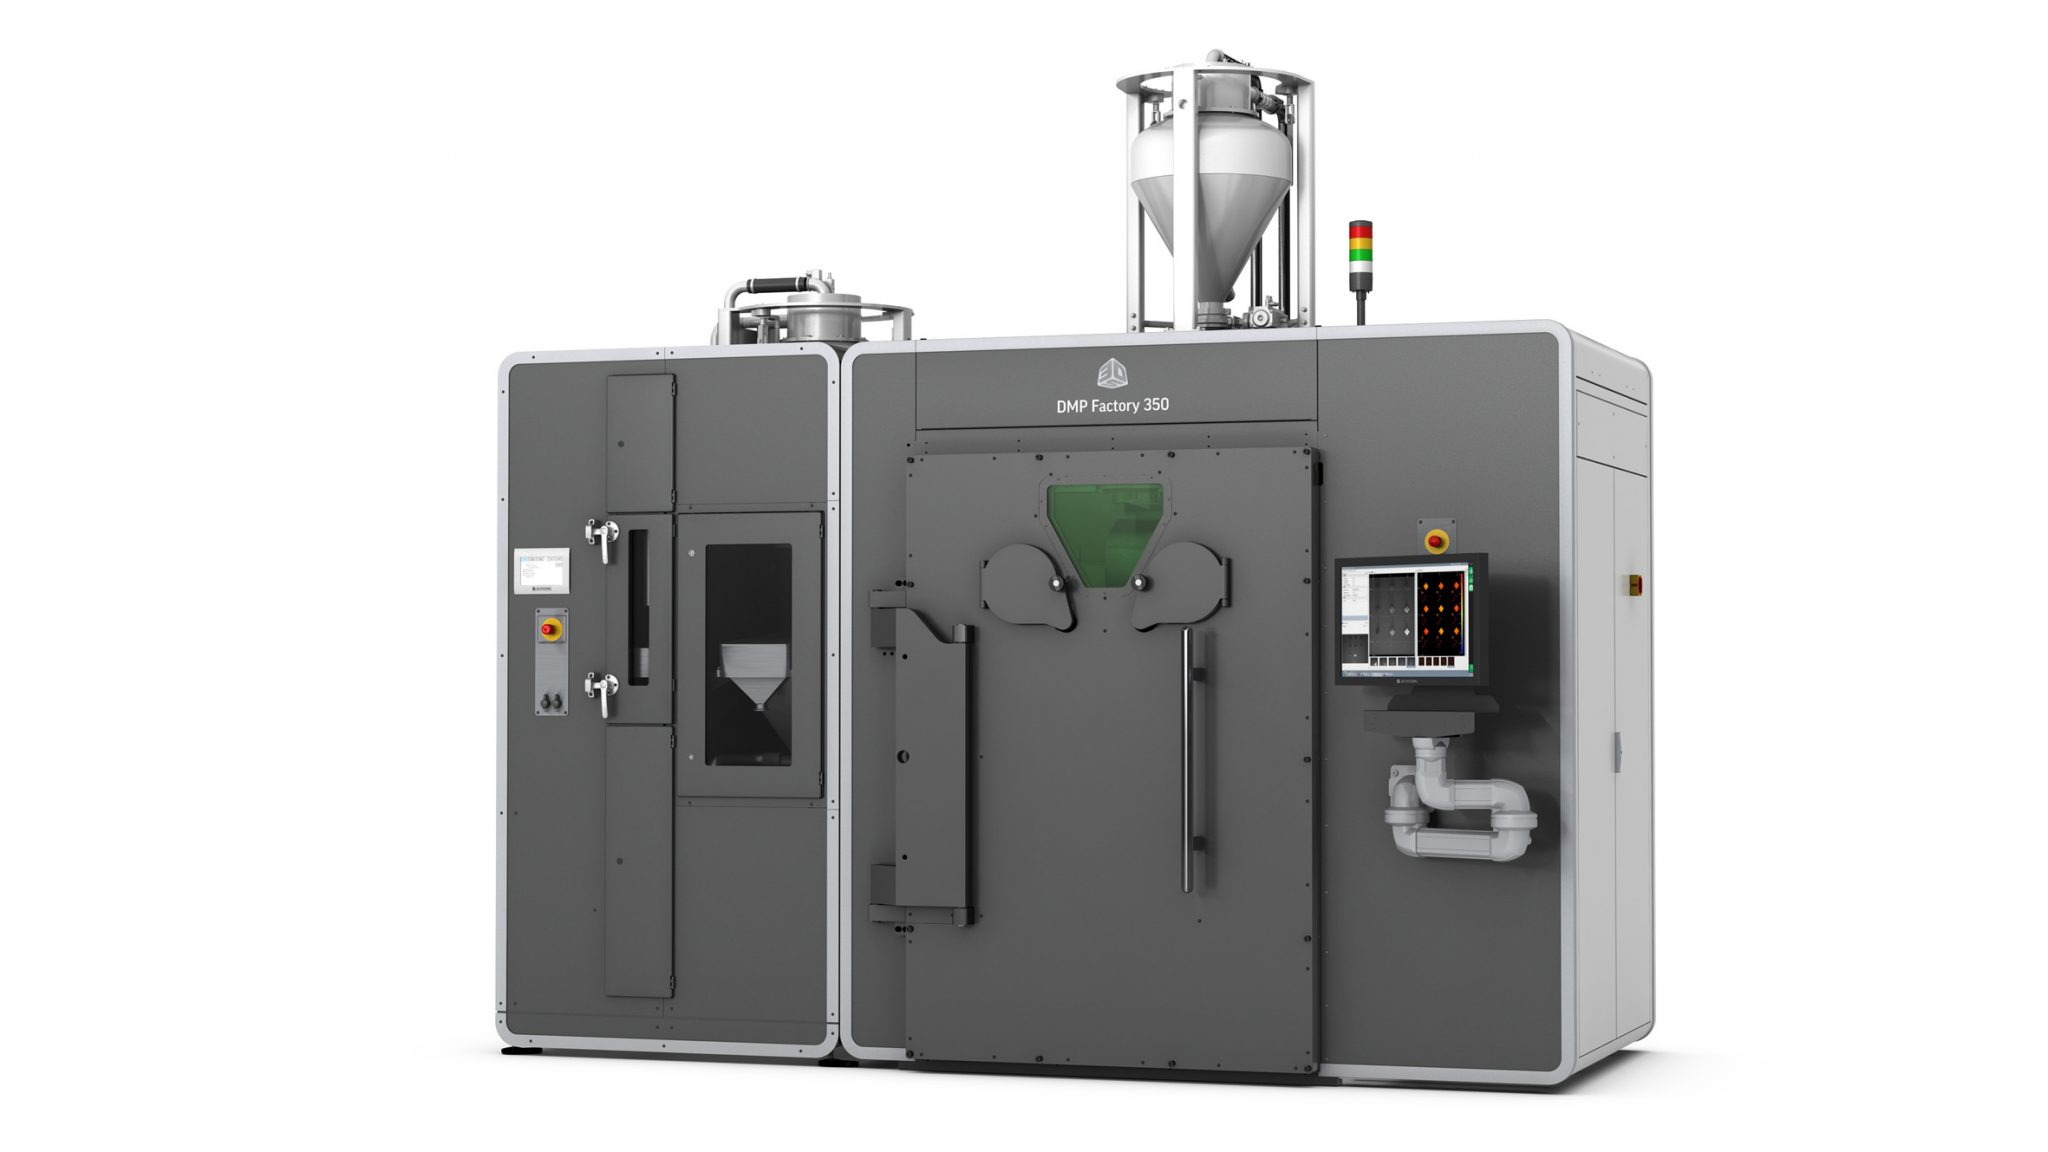 Tbe 3D Systems DMP Factory 350 metal 3D printer. Photo via 3D Systems.